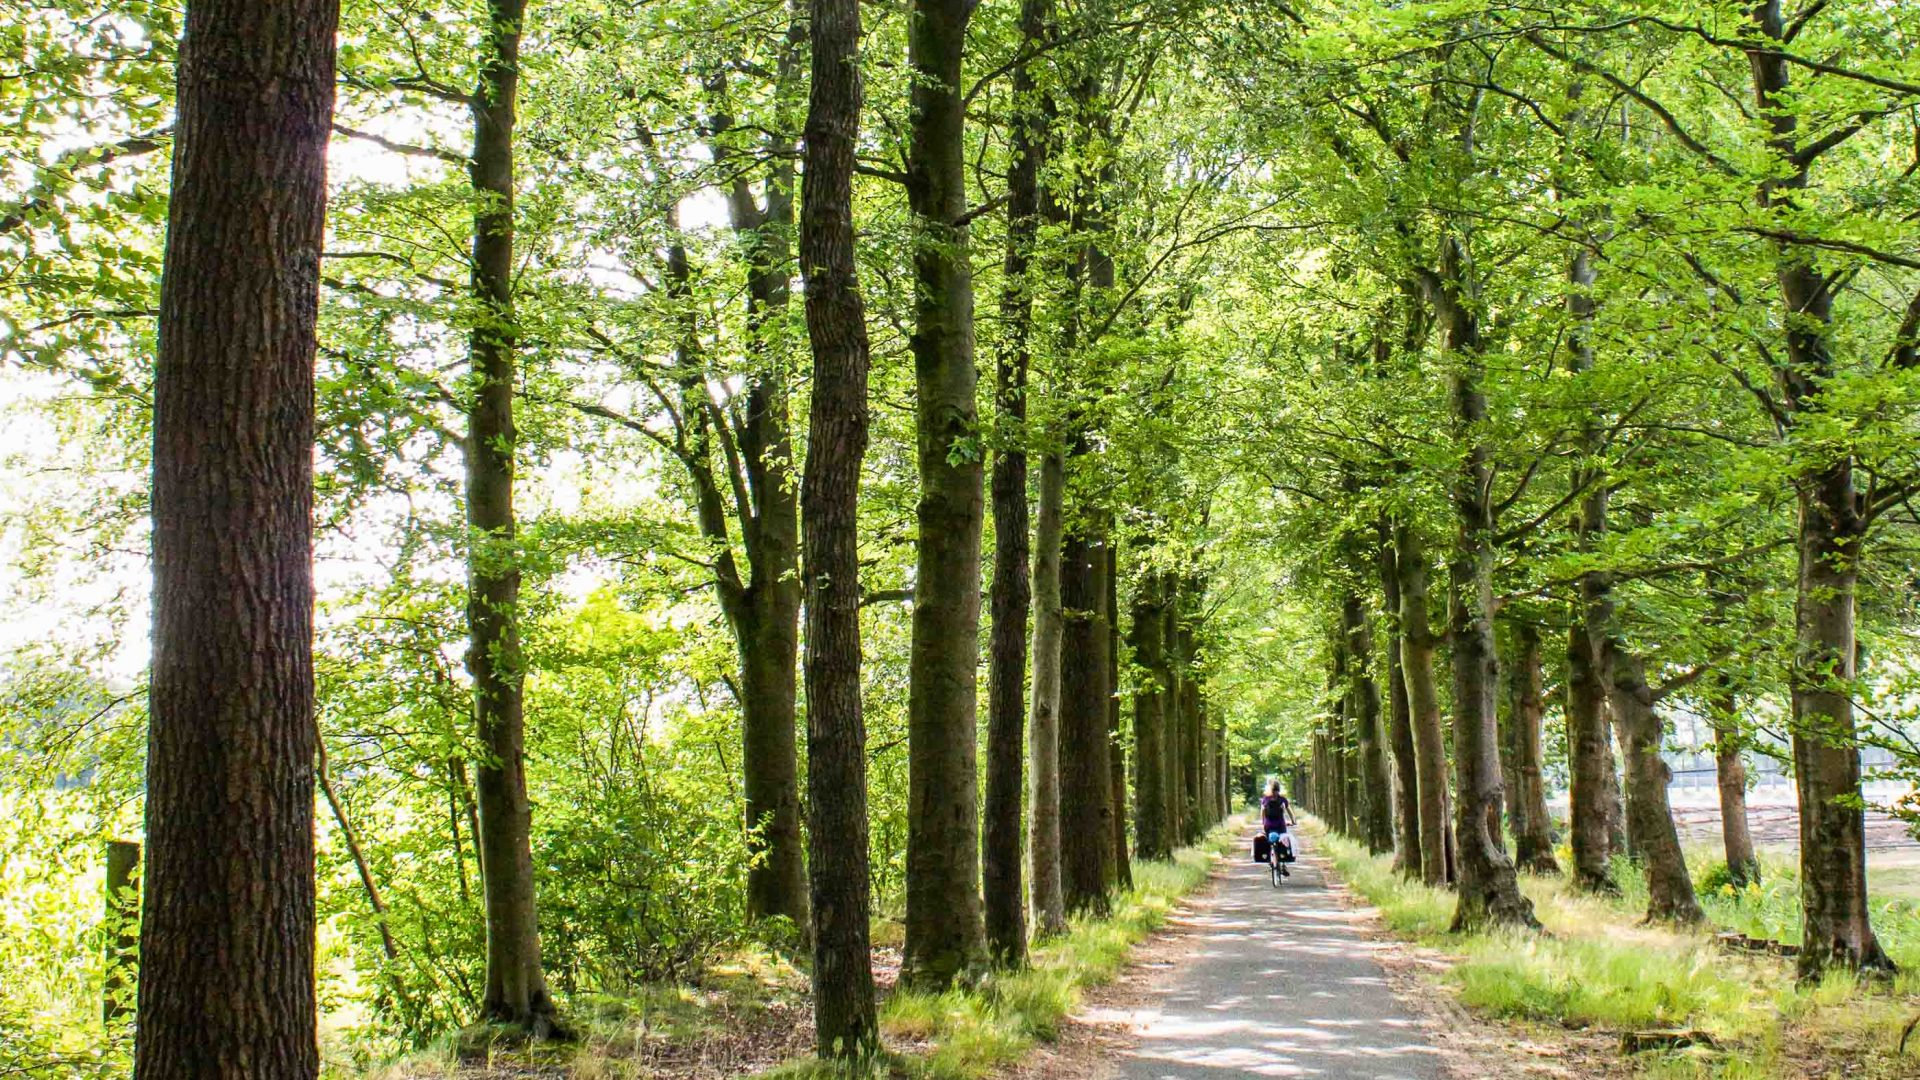 Cathleen cycling through the forest in the Netherlands.